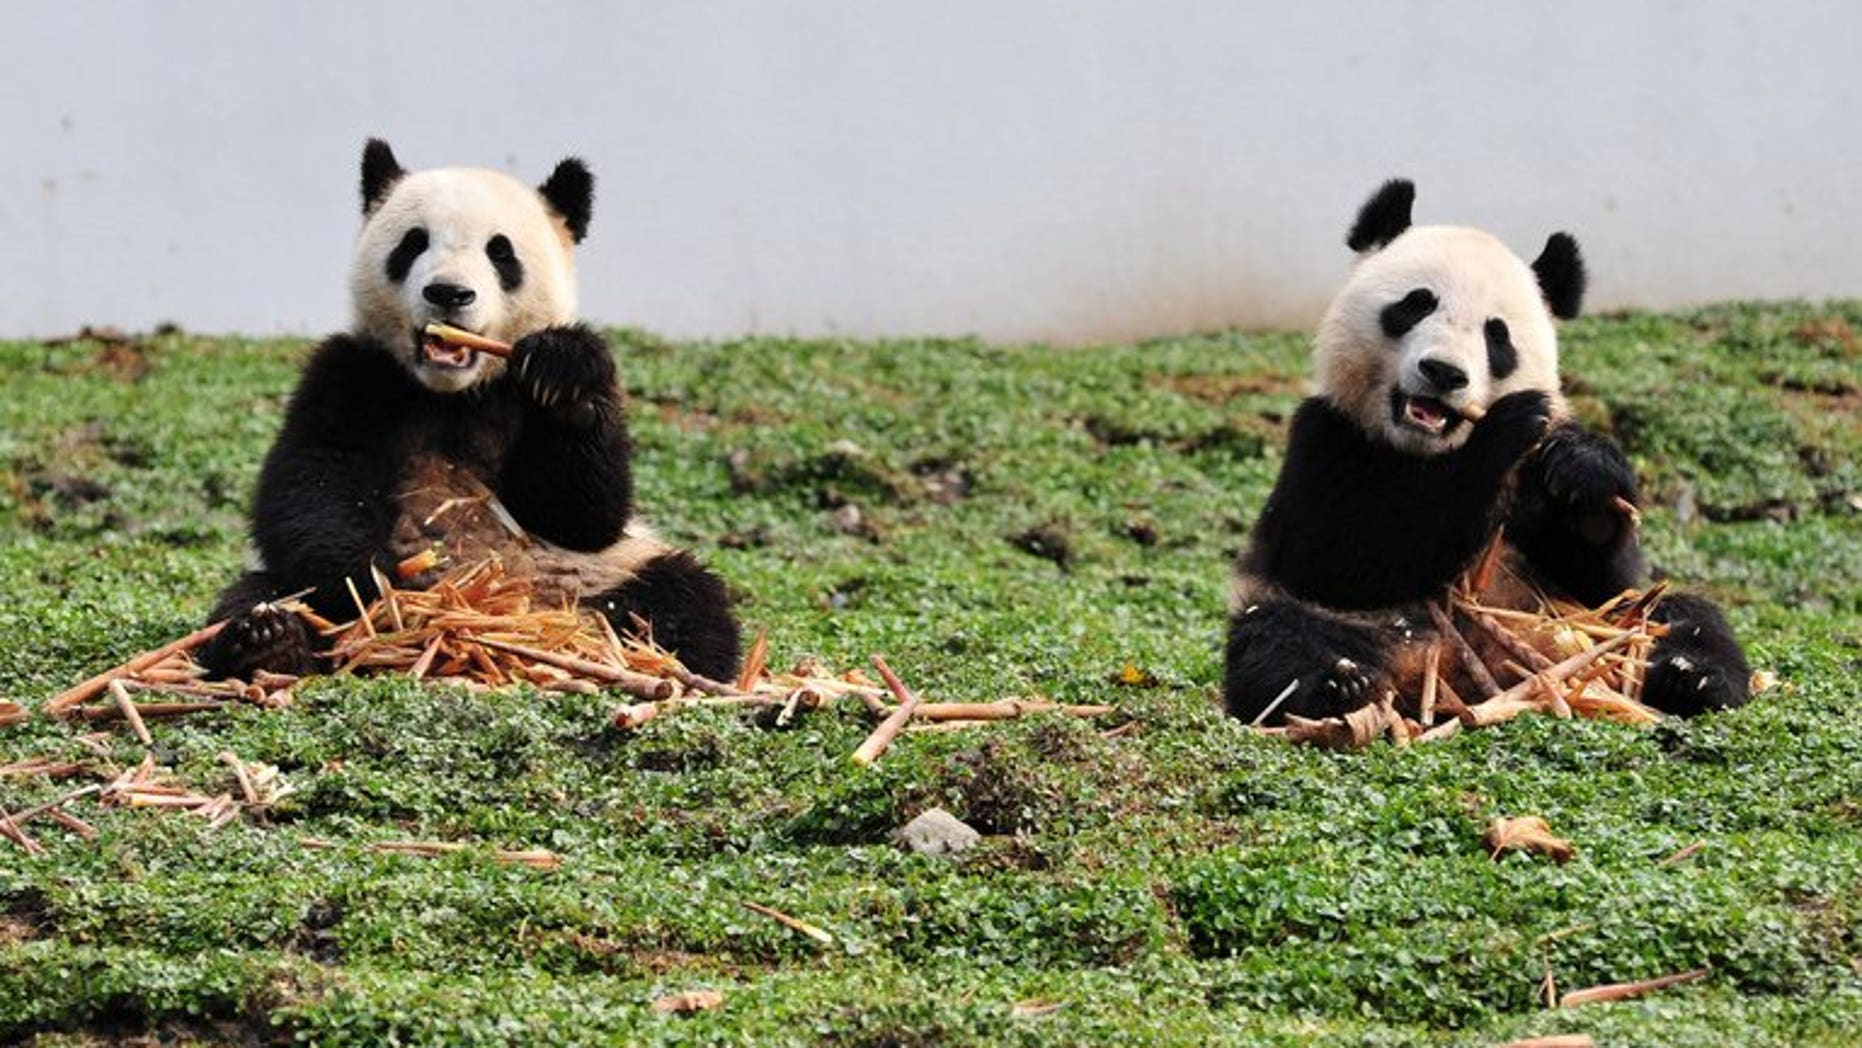 This picture taken on October 30, 2012 shows two giant pandas at the Wolong National Nature Reserve in China's Sichuan province. A rare giant panda has given birth to twins in China, the first pair of the endangered species born in the world this year, conservation workers told state media Sunday.